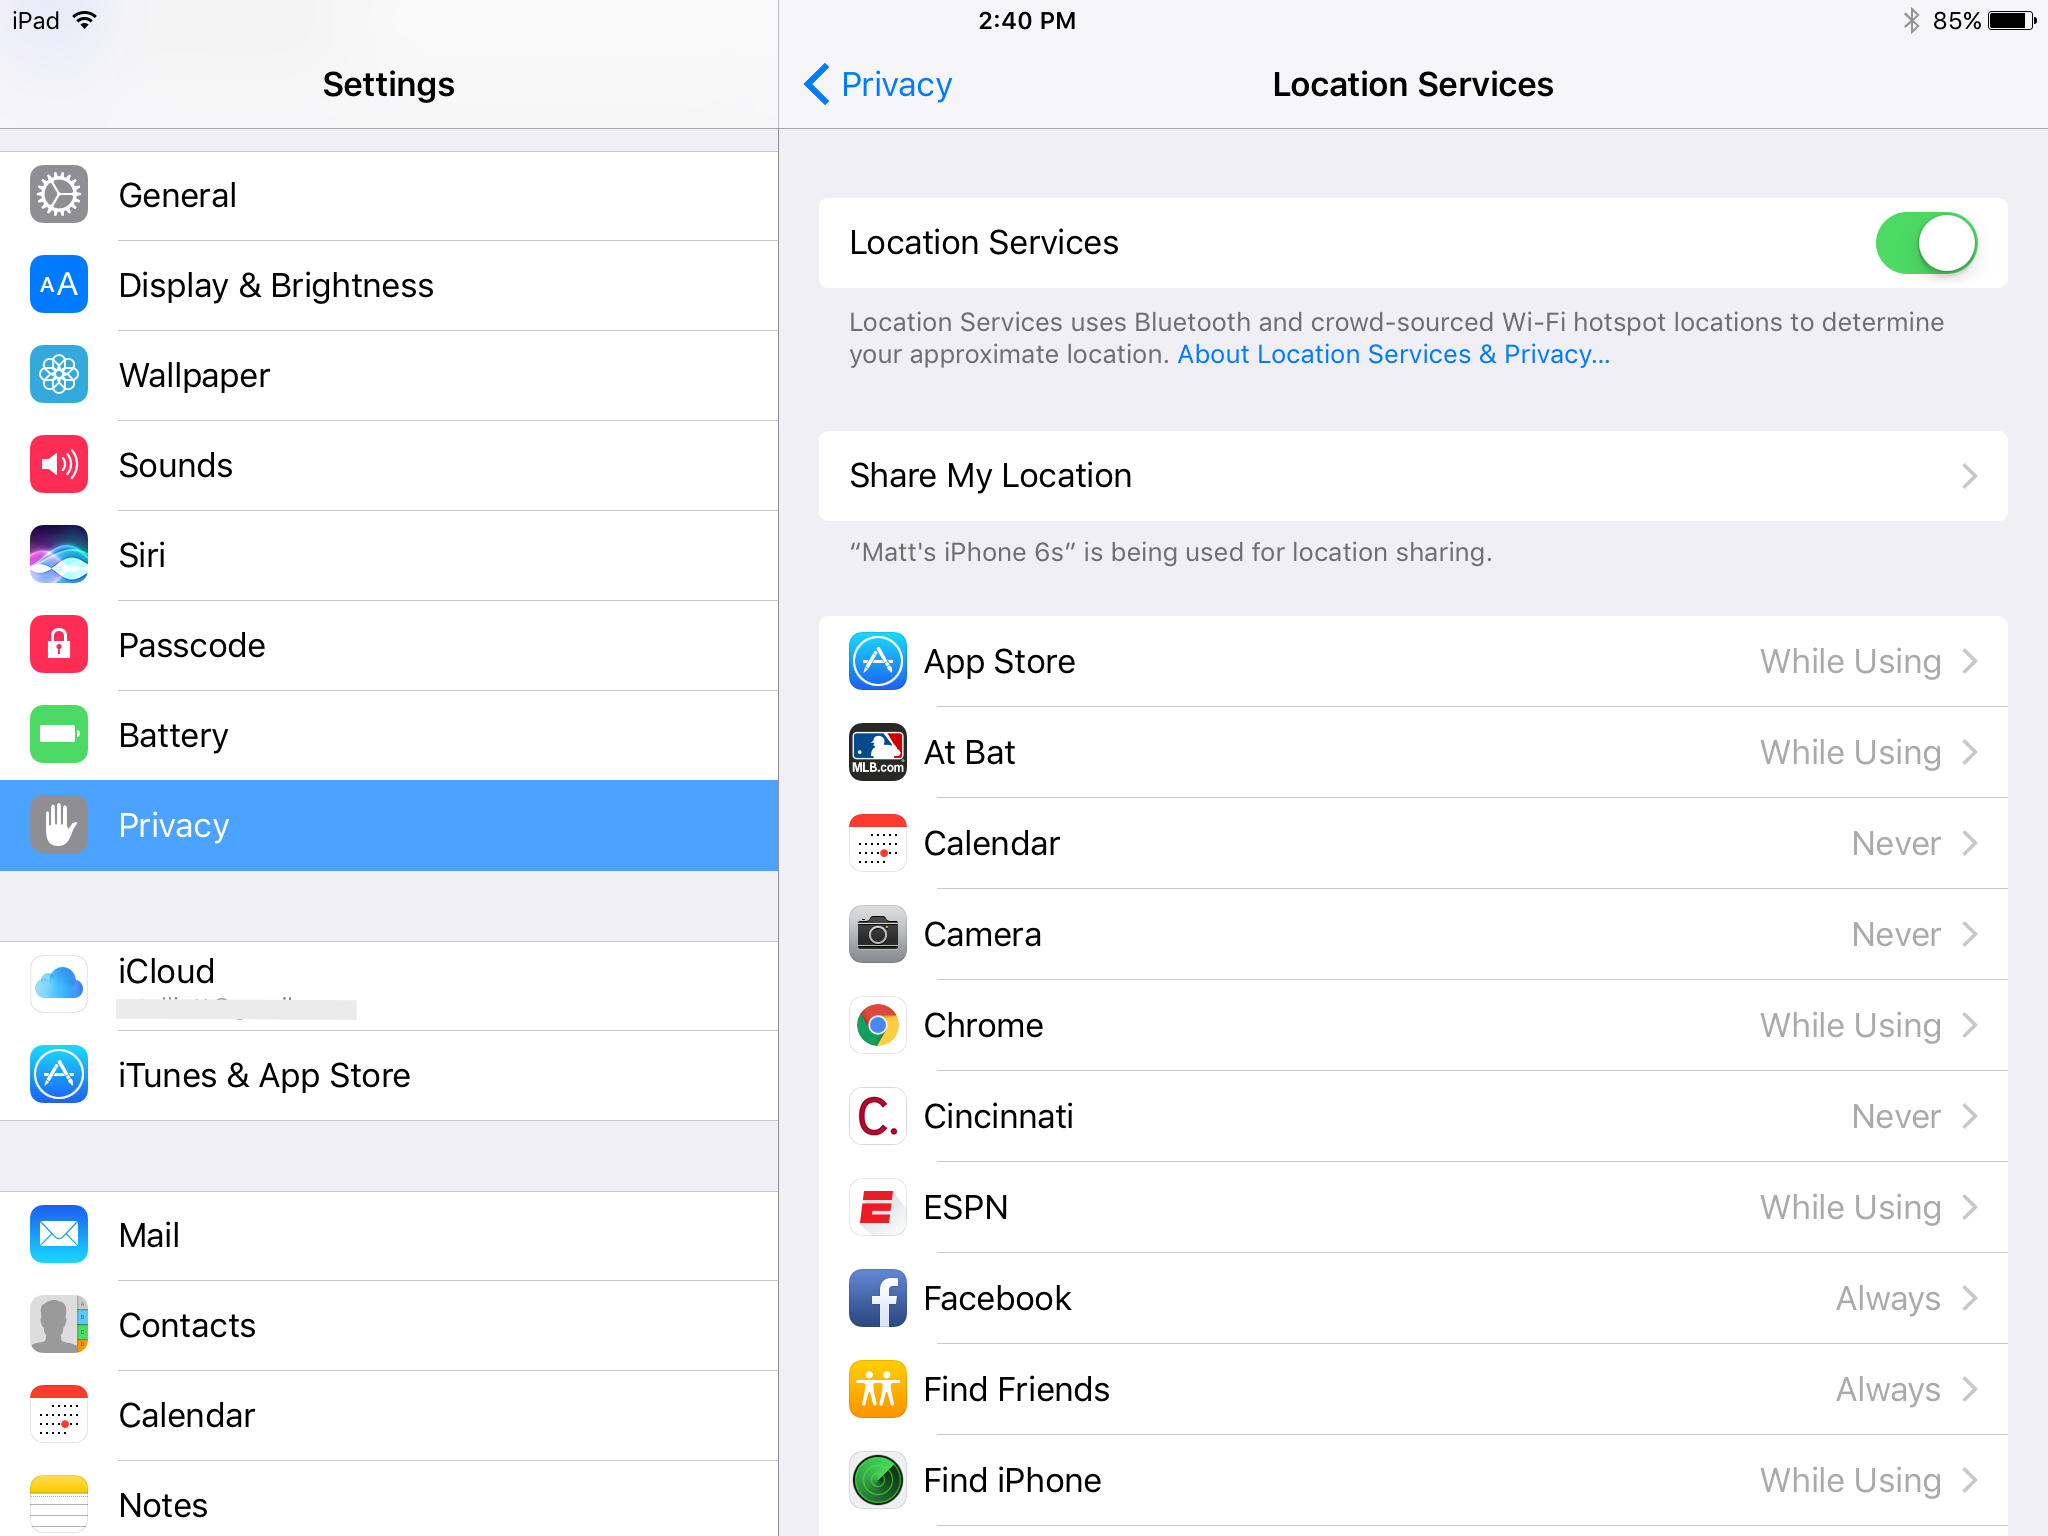 location-services-ipad.png